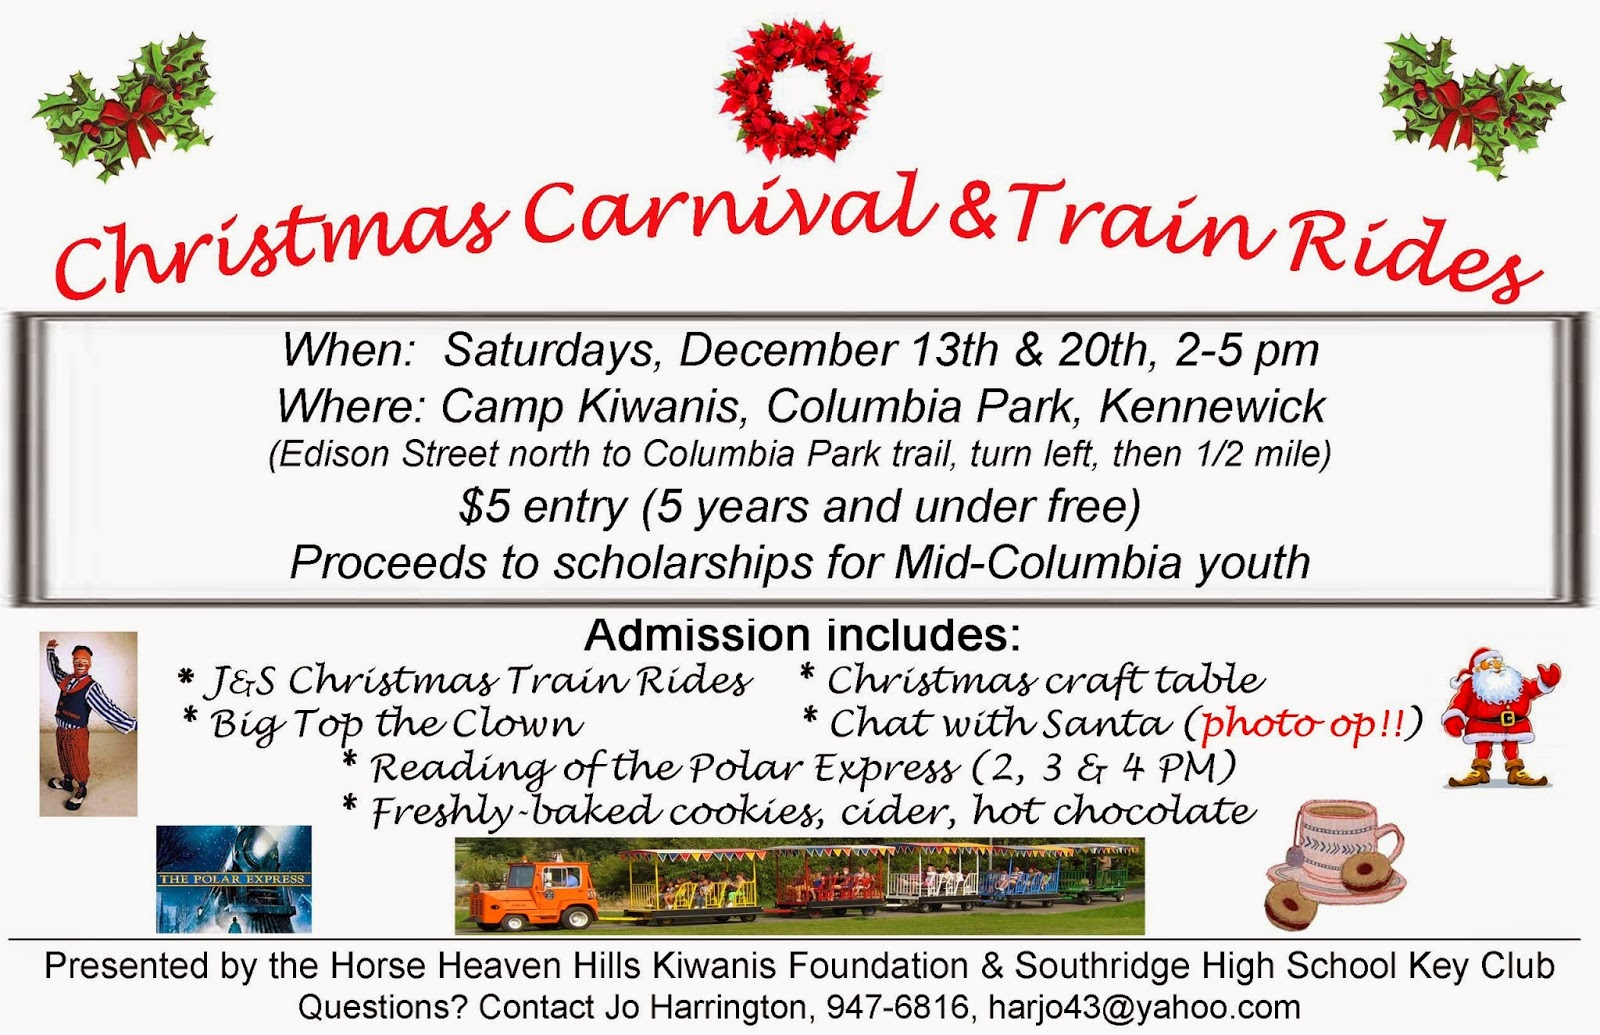 Kiwanis Club Of The Horse Heaven Hills Foundation Christmas Carnival Kennewick, Washington